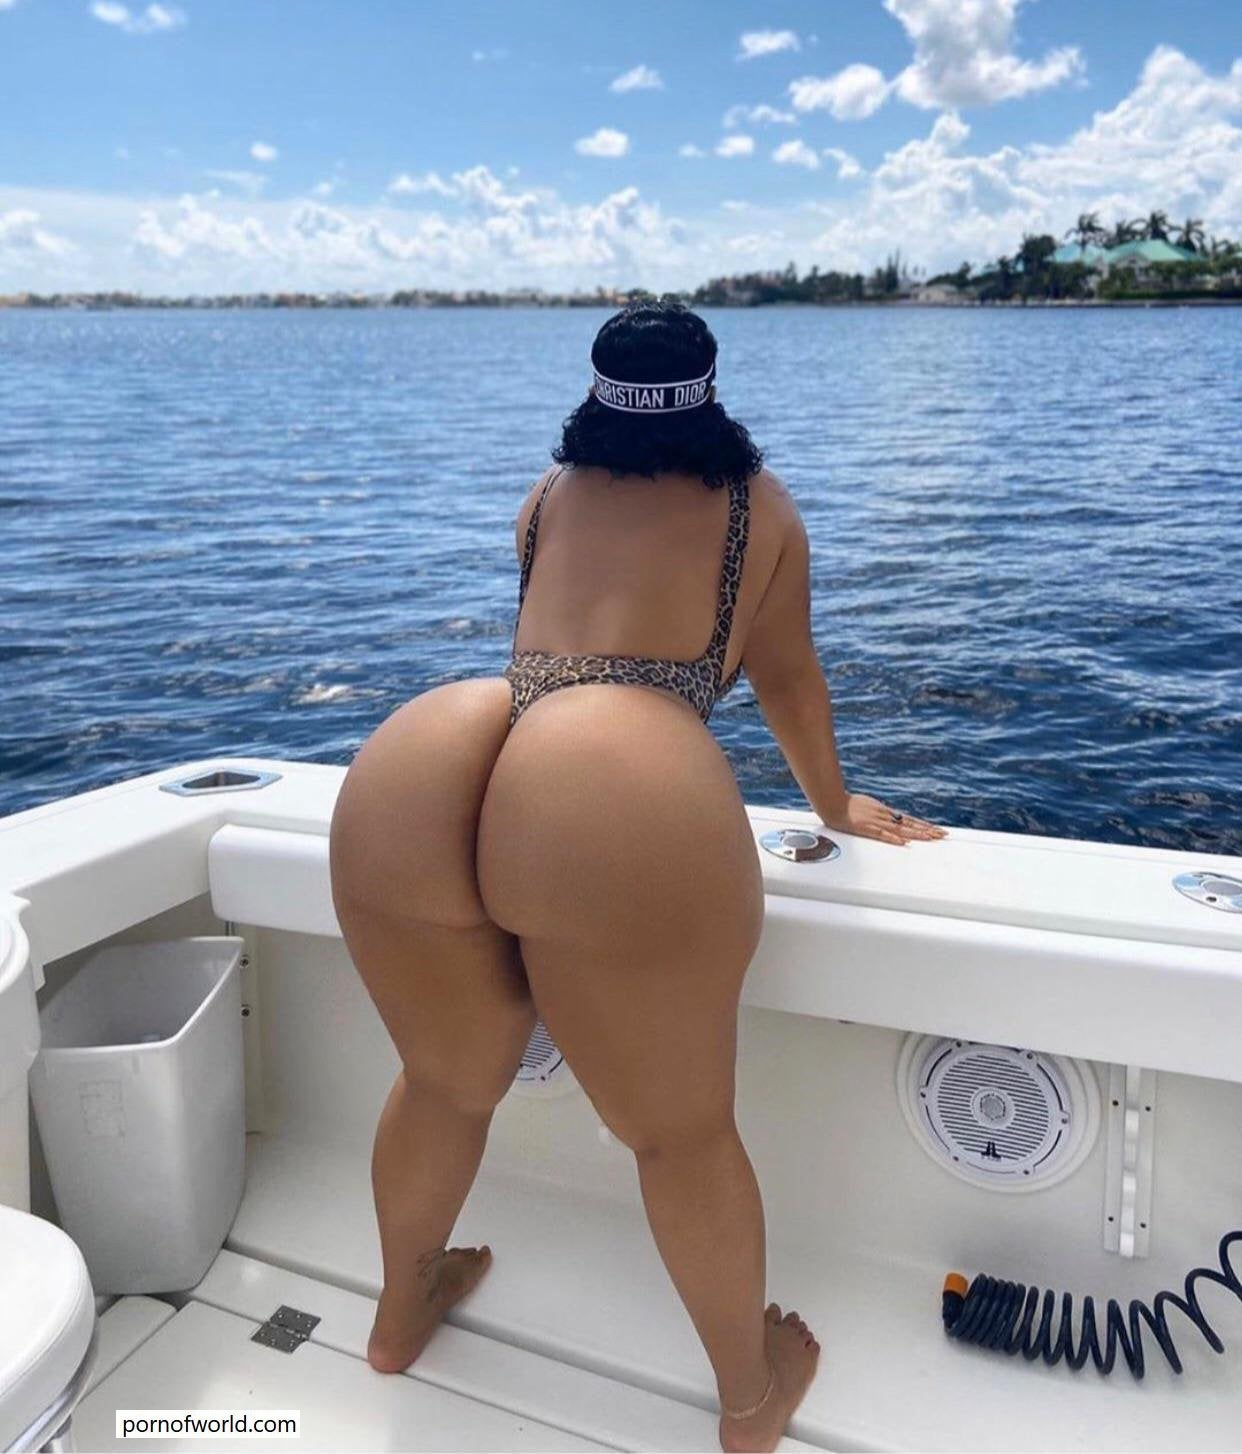 Huge ass on a yacht! [pic]